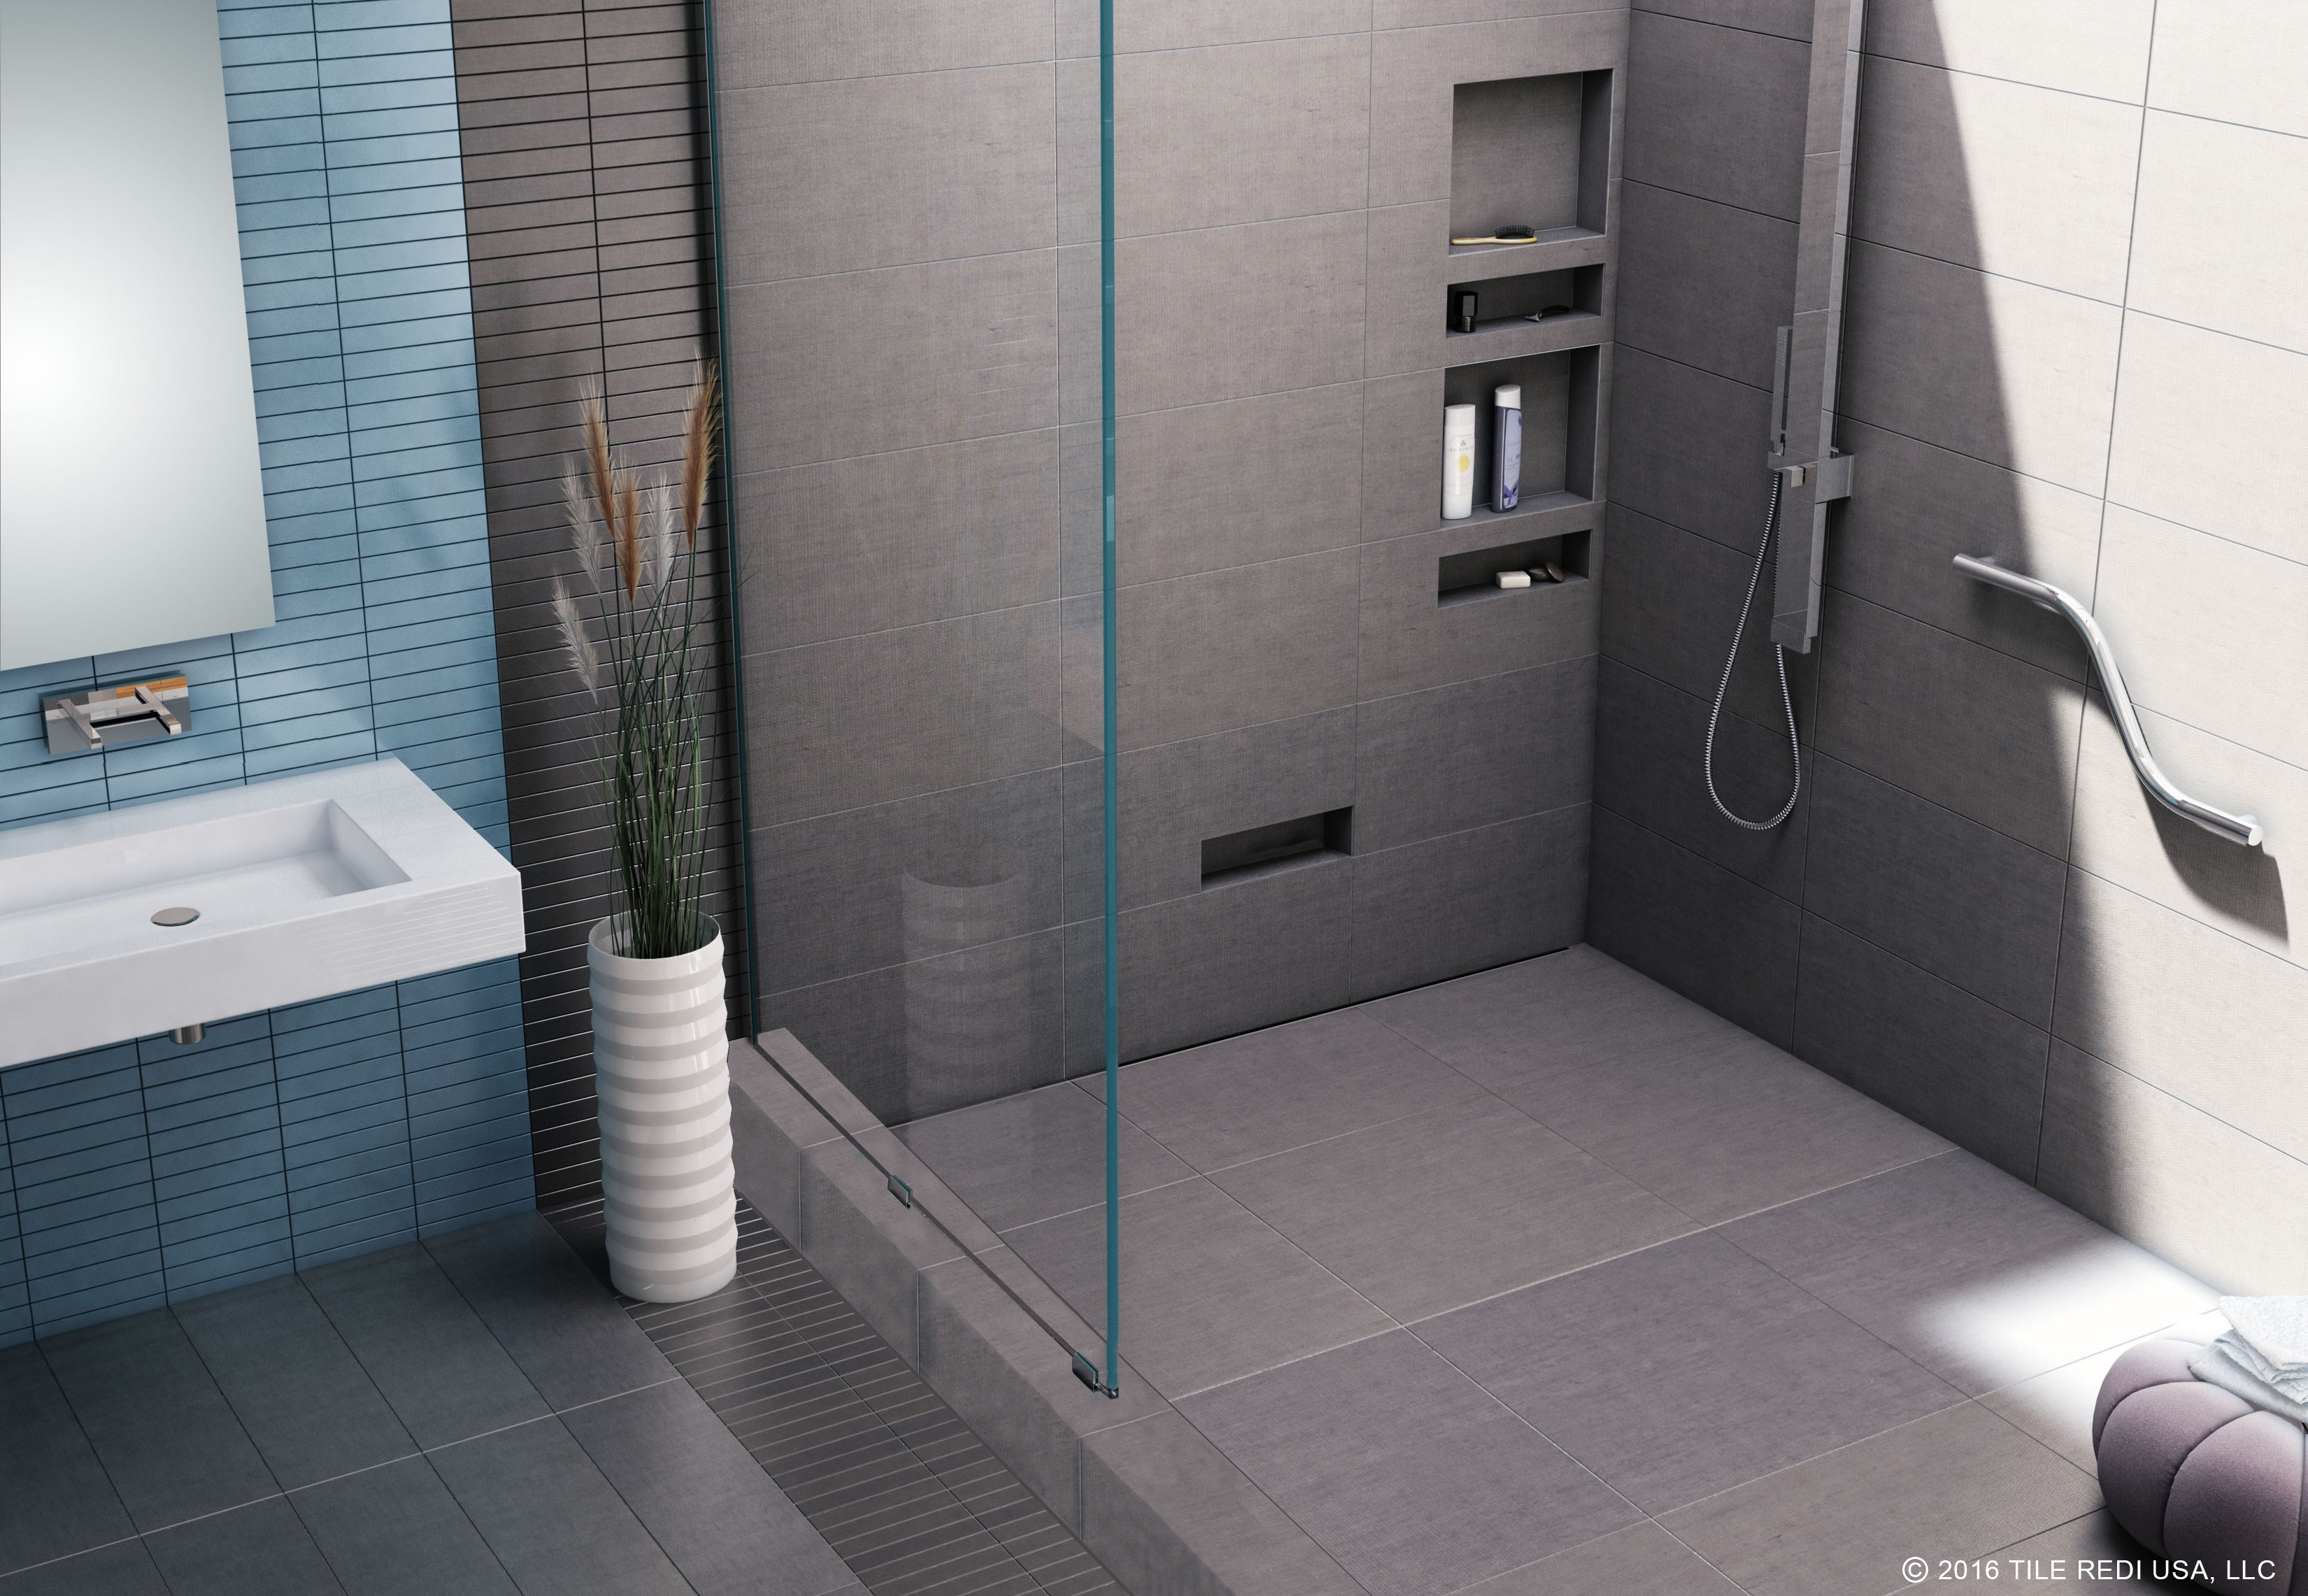 Tile Redi Introduces The WonderFall Trench, The Only One Piece Ready To Tile  Shower Pan On The Market With An Integrated Linear Trench That Includes An  ...